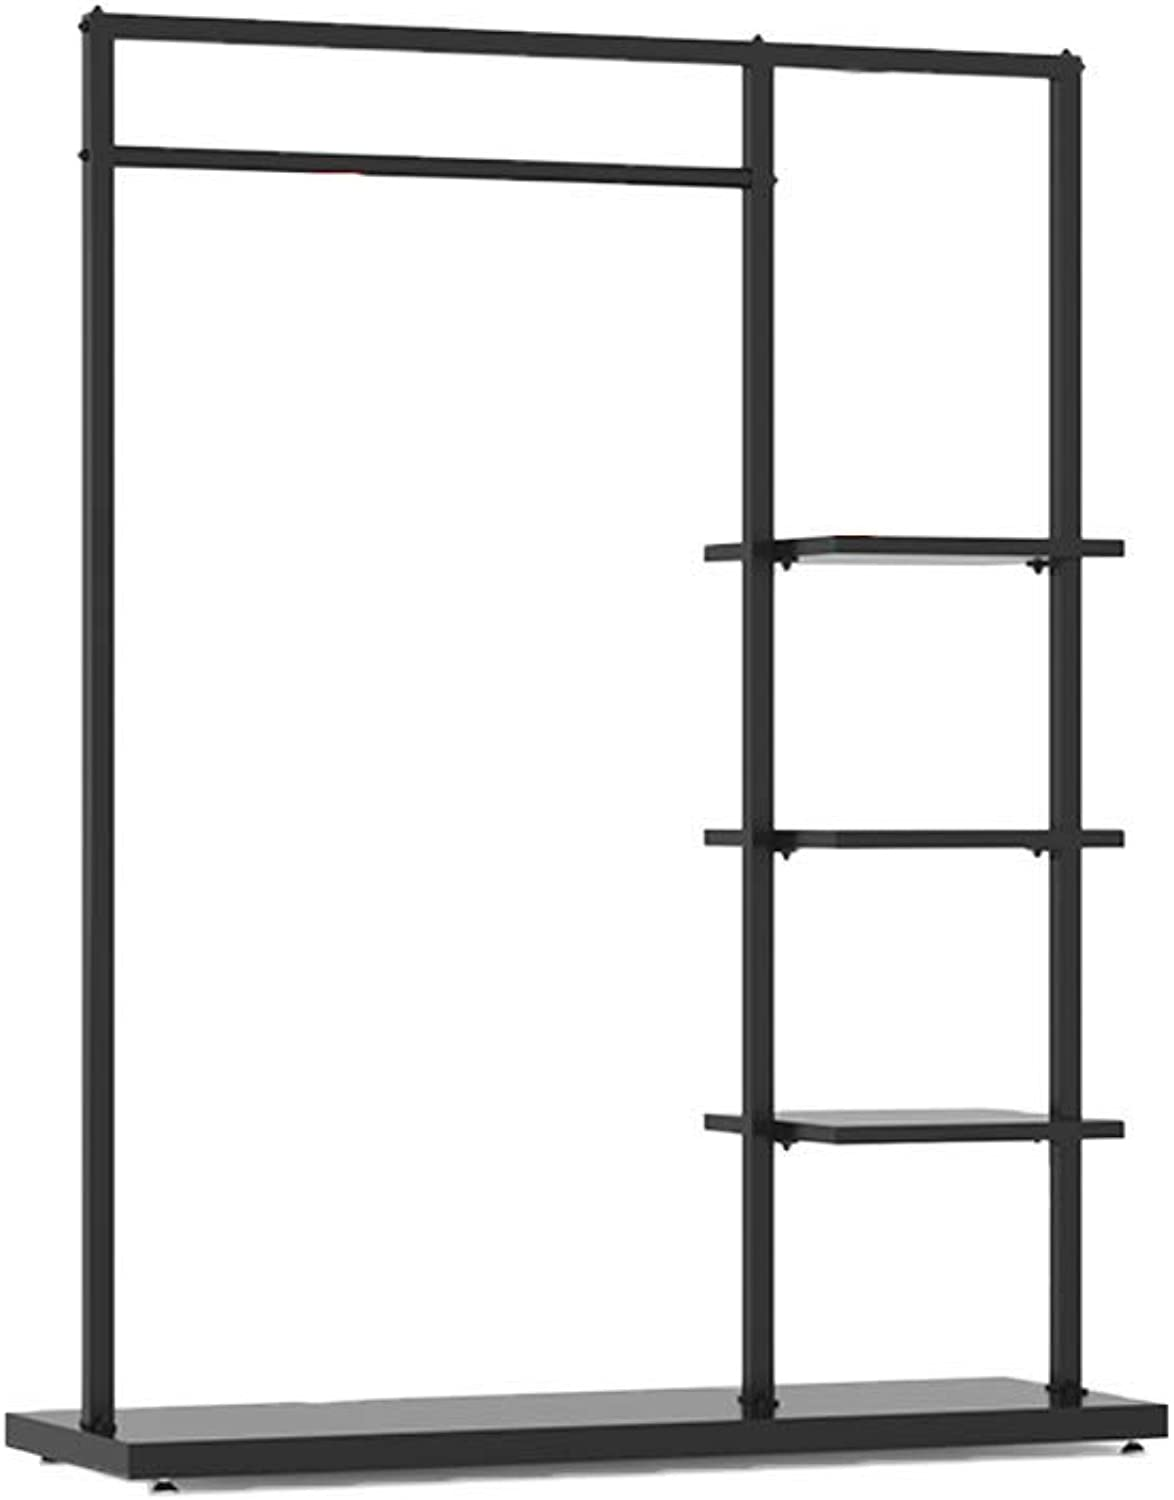 DYR Premium Entryway Coat Rack with Shelf, Support for Metal Coat Hooks shoes Holder, Resistant for Home use Hall Rustproof-B 120x40x155cm (47x16x61inch)